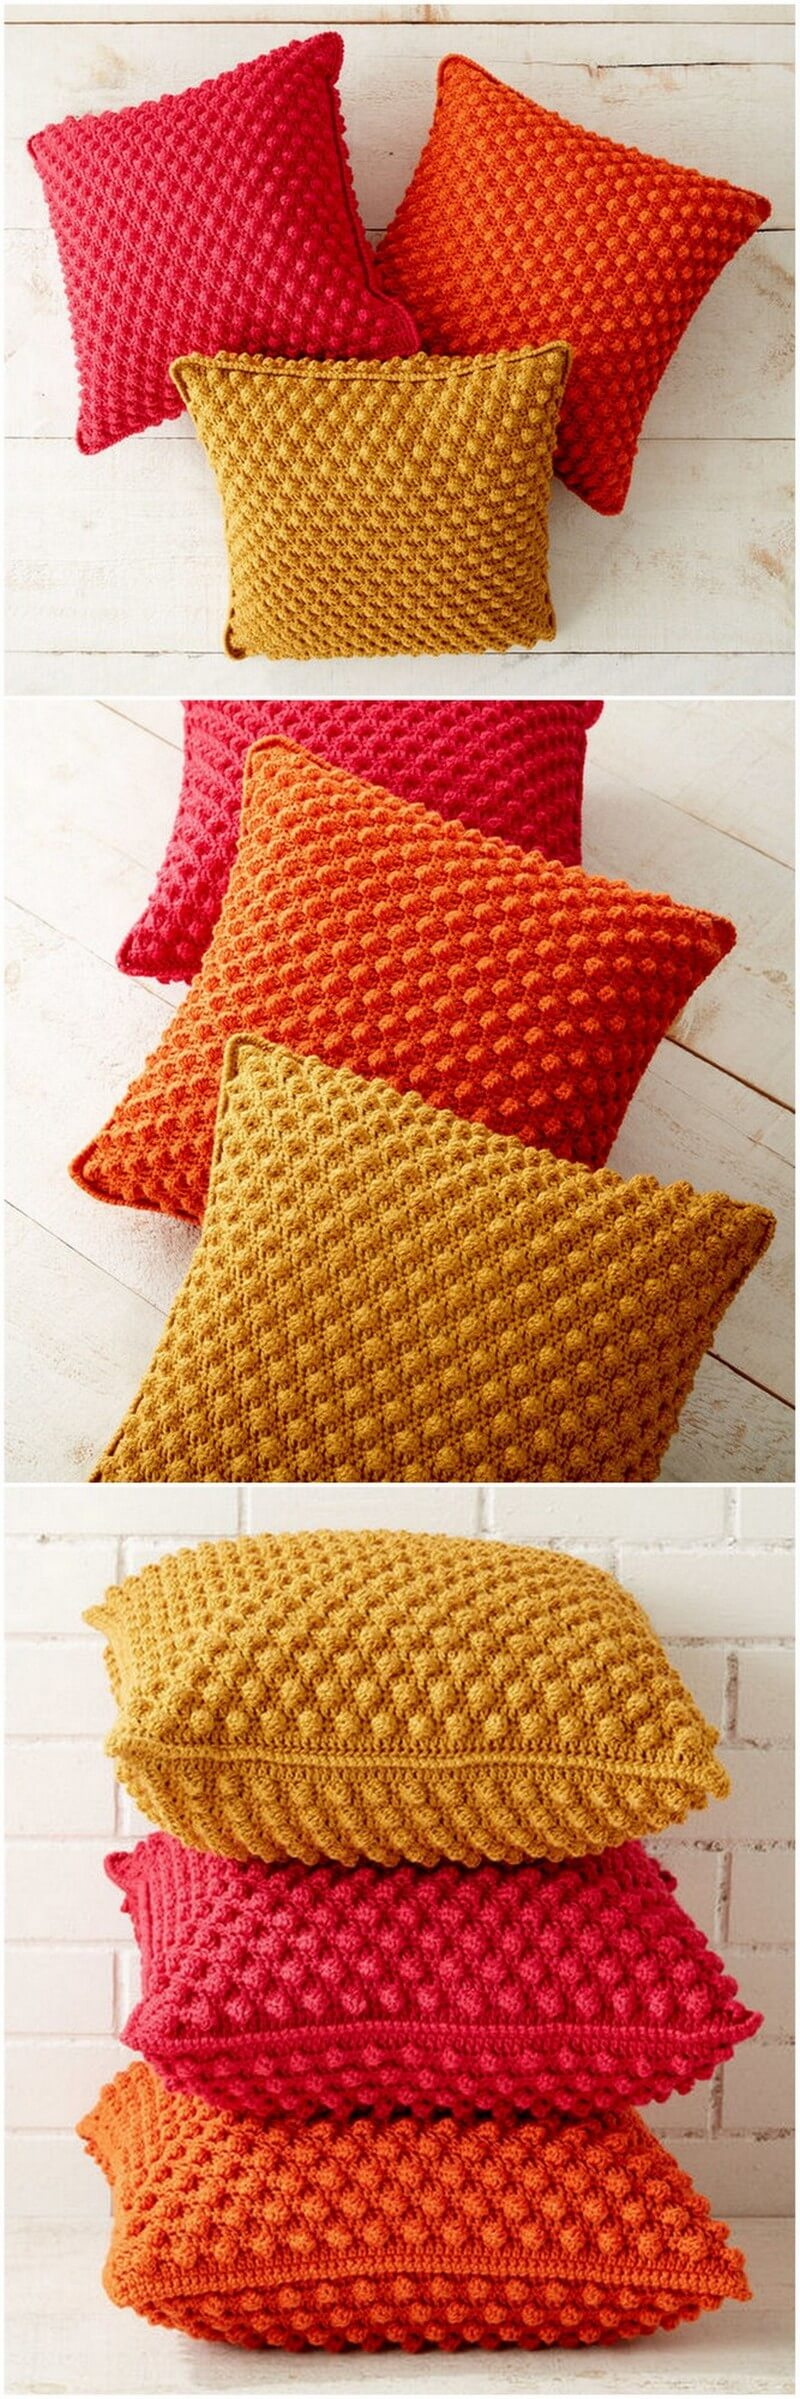 Crochet Pillow Pattern (9)